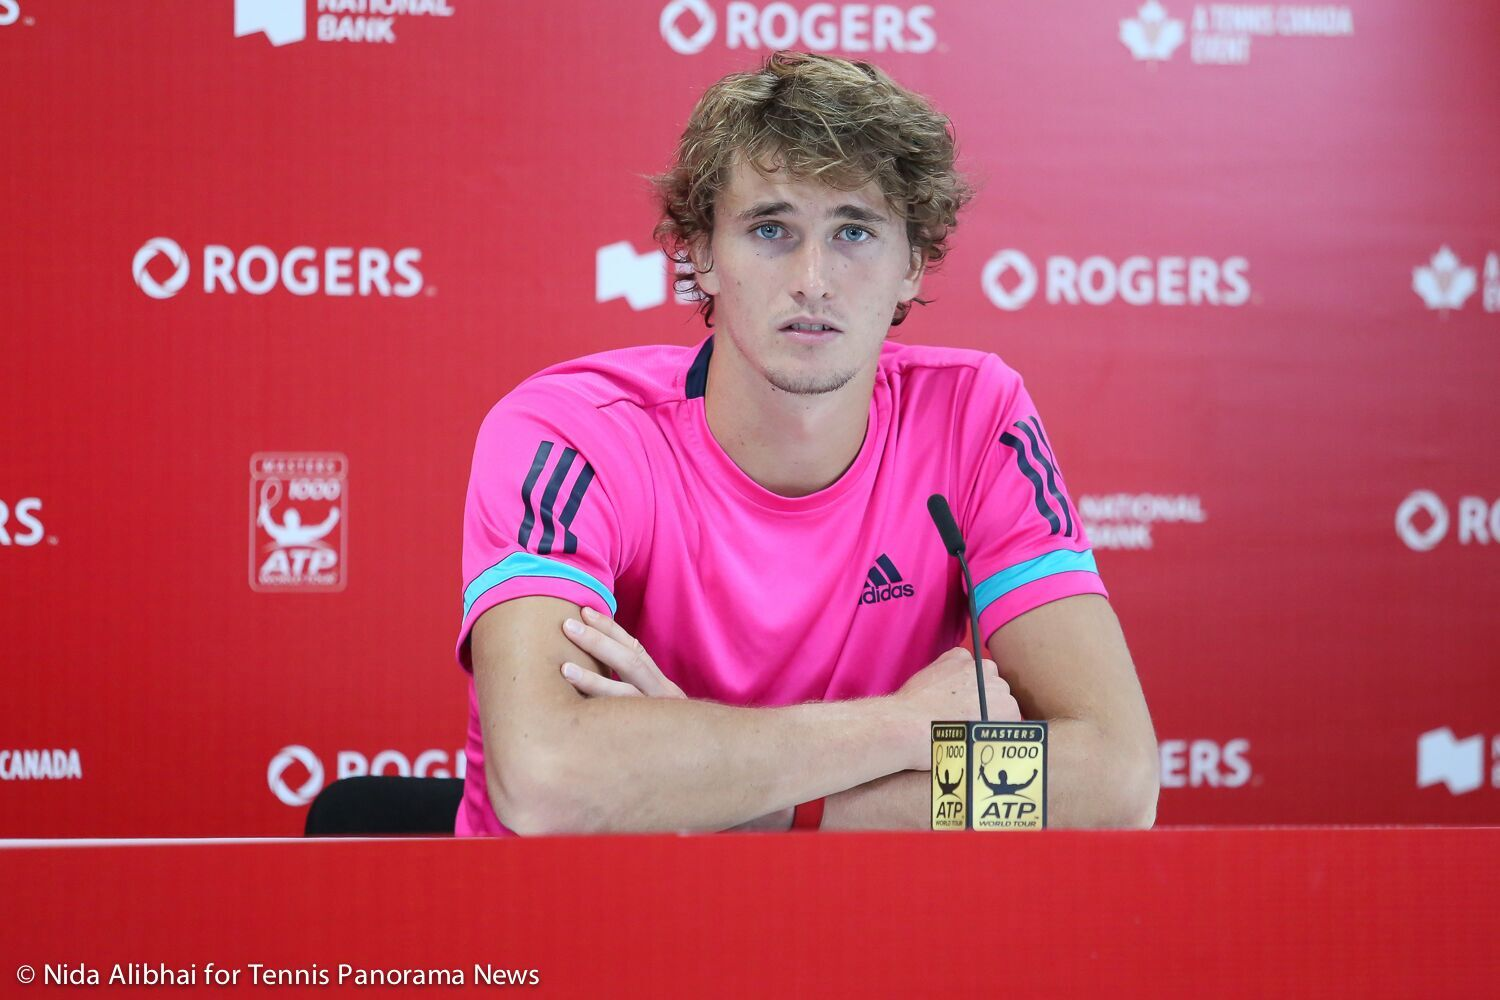 A Zverev news conference